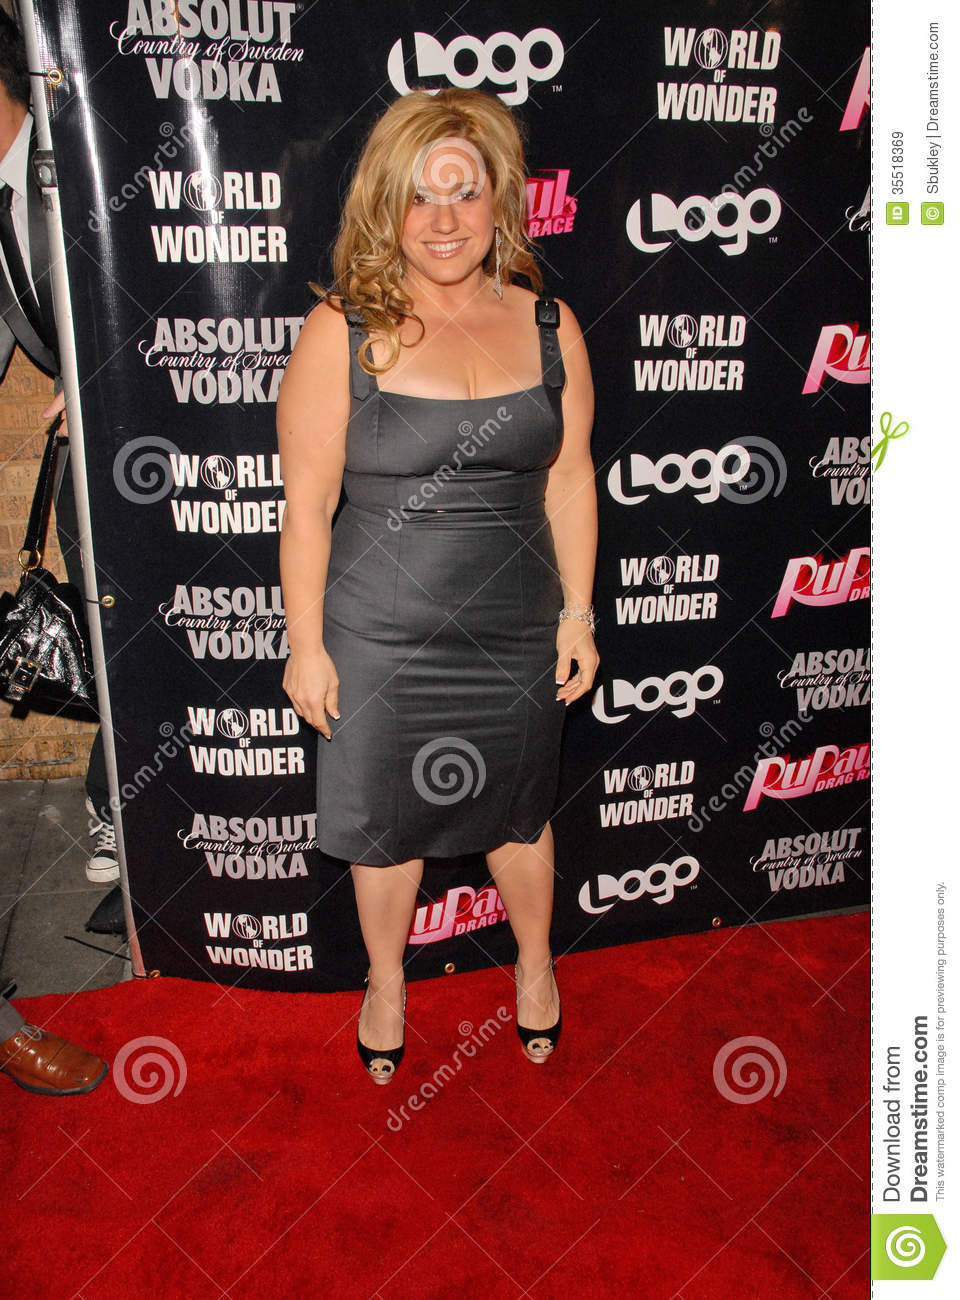 marissa jaret winokur husbandmarissa jaret winokur hairspray, marissa jaret winokur weight loss, marissa jaret winokur 2016, marissa jaret winokur hairspray live, marissa jaret winokur instagram, marissa jaret winokur tracy turnblad, marissa jaret winokur scream queens, marissa jaret winokur cancer, marissa jaret winokur age, marissa jaret winokur imdb, marissa jaret winokur american beauty, marissa jaret winokur movies, marissa jaret winokur hpv, marissa jaret winokur never been kissed, marissa jaret winokur son, marissa jaret winokur twitter, marissa jaret winokur biography, marissa jaret winokur husband, marissa jaret winokur scary movie, marissa jaret winokur net worth